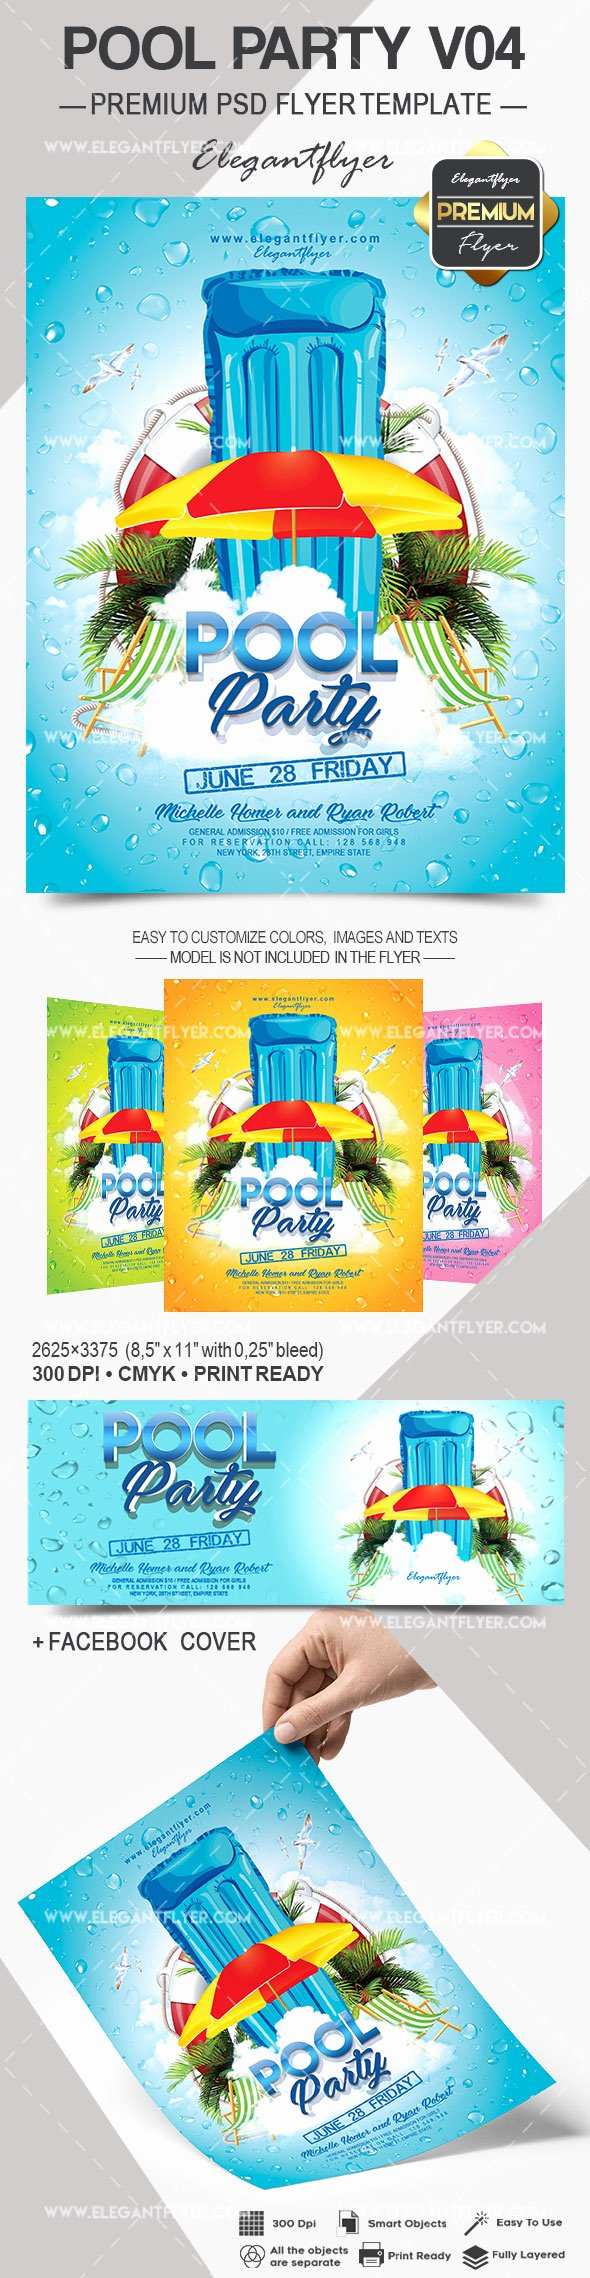 Pool Party Flyer Templates Free Best Of Pool Party V04 – Flyer Psd Template – by Elegantflyer